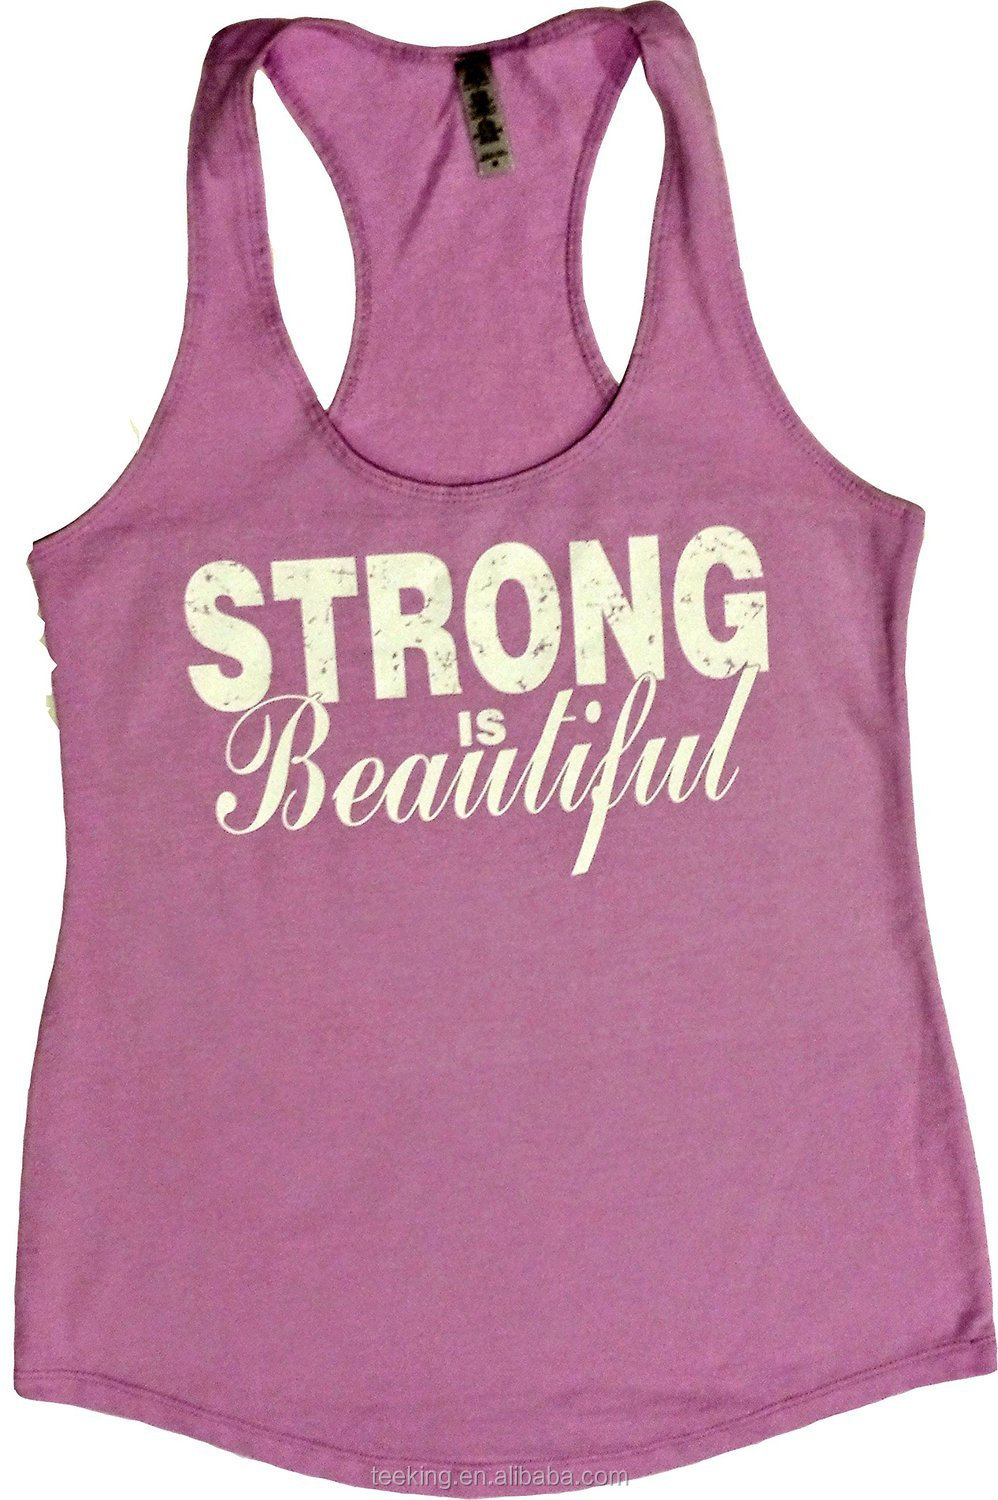 Women's cotton gym singlet with printing design